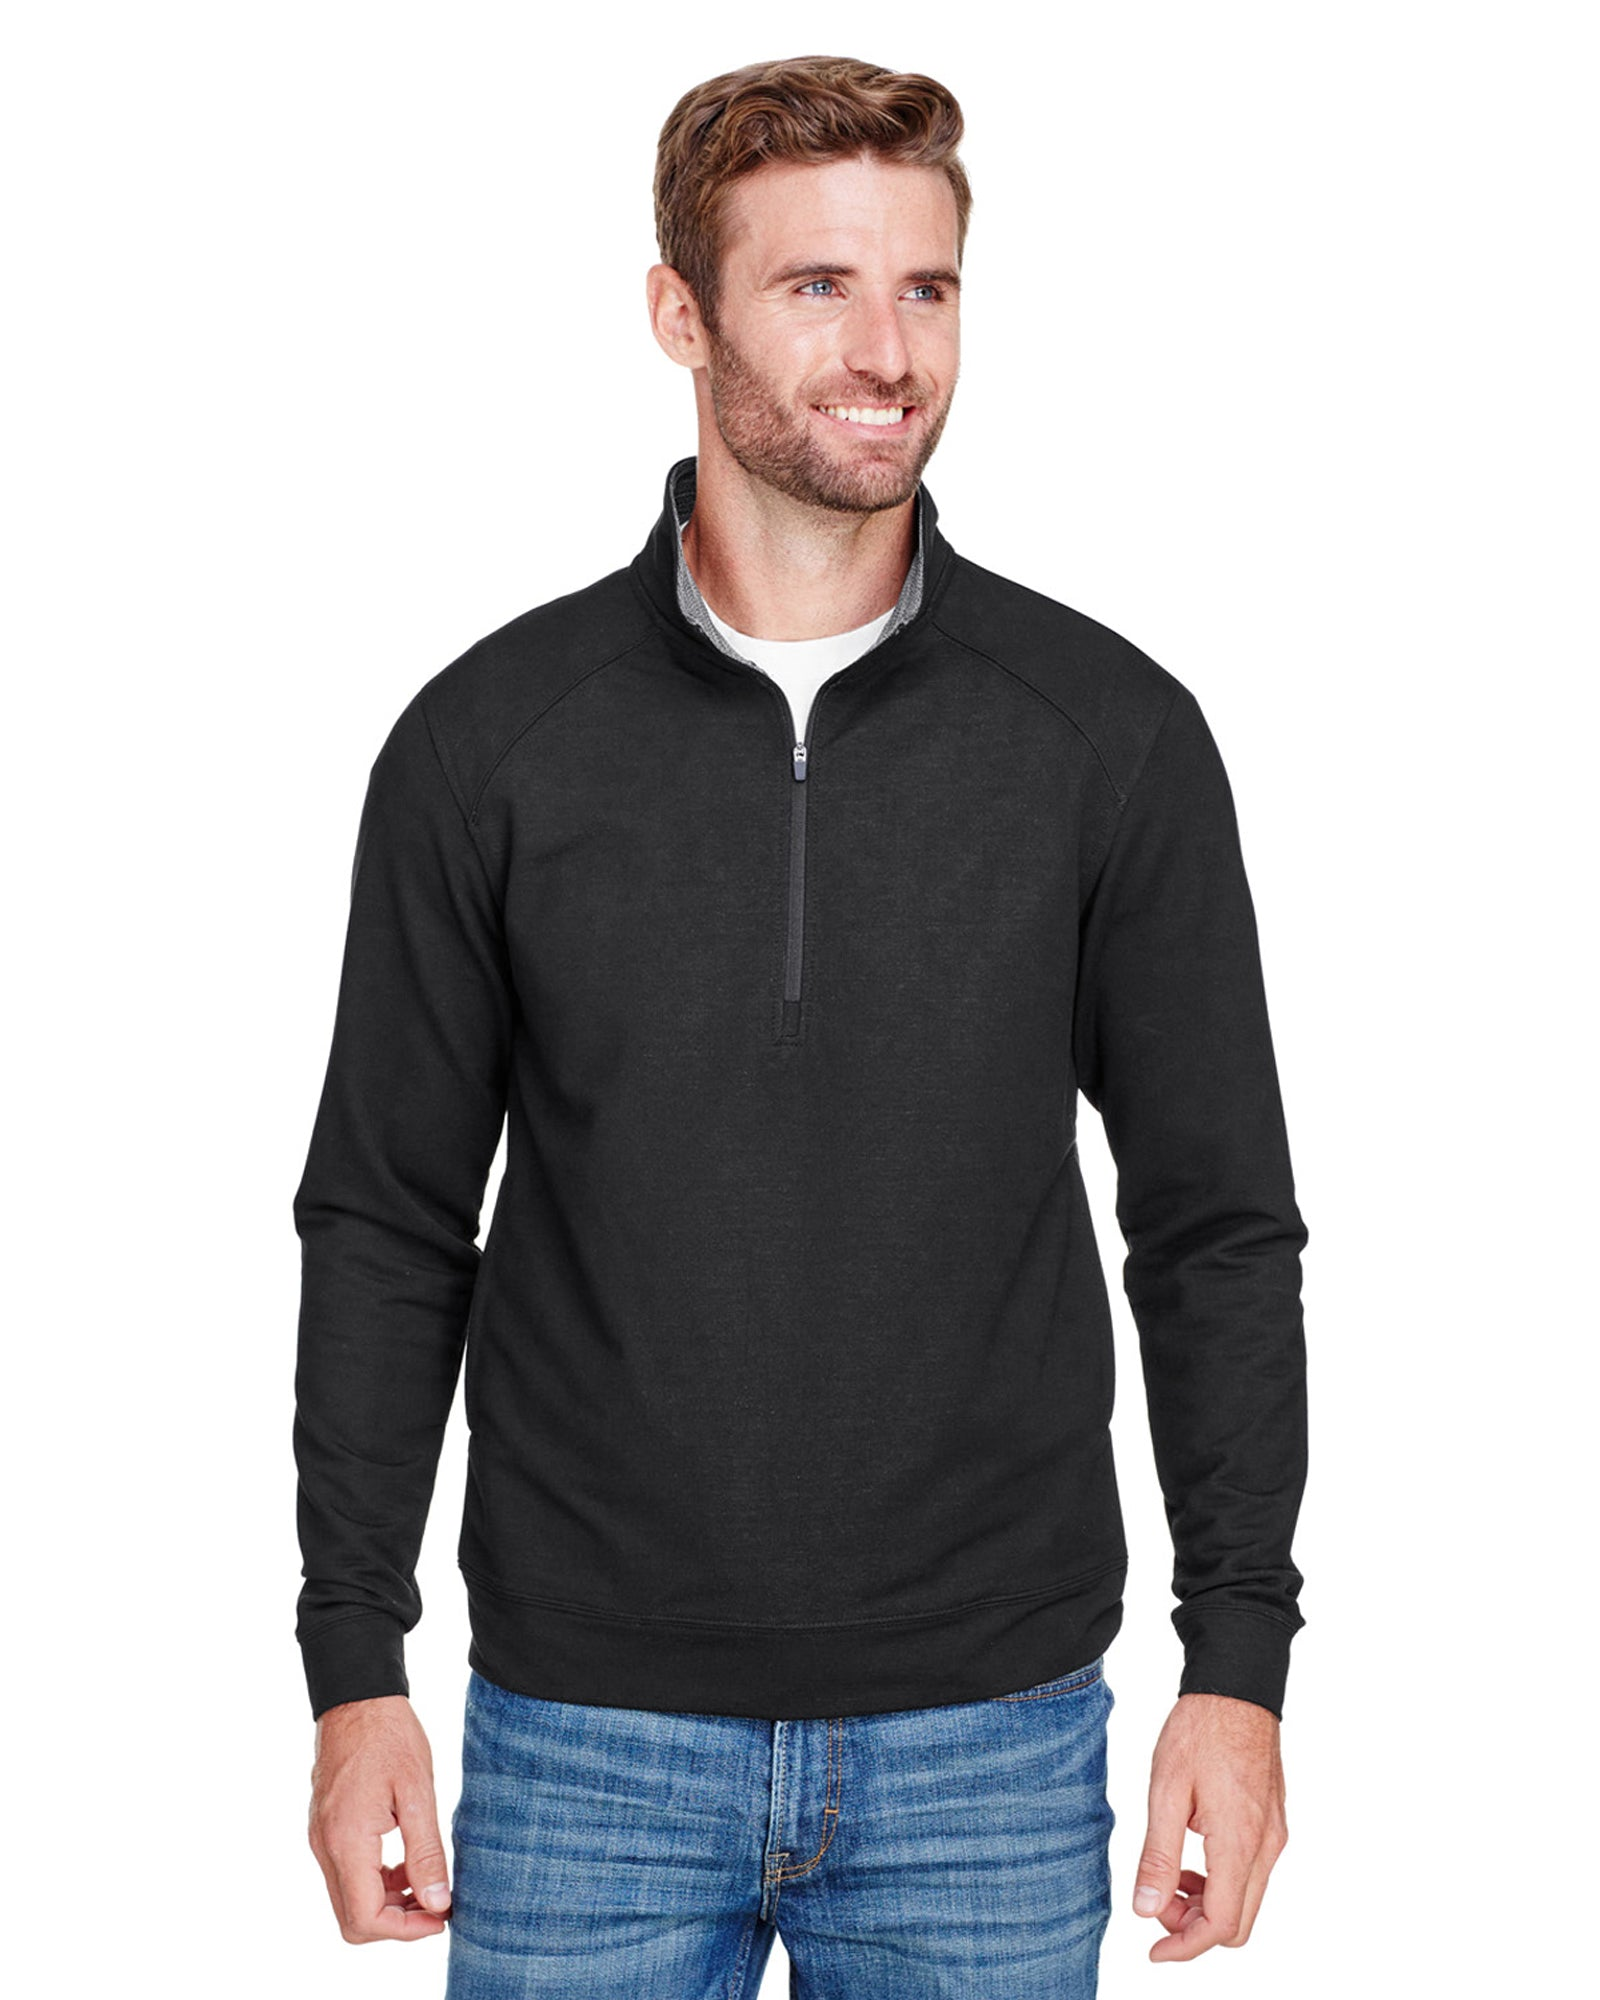 1/4 Zip Pullover in Black Tech Stretch - Rainwater's